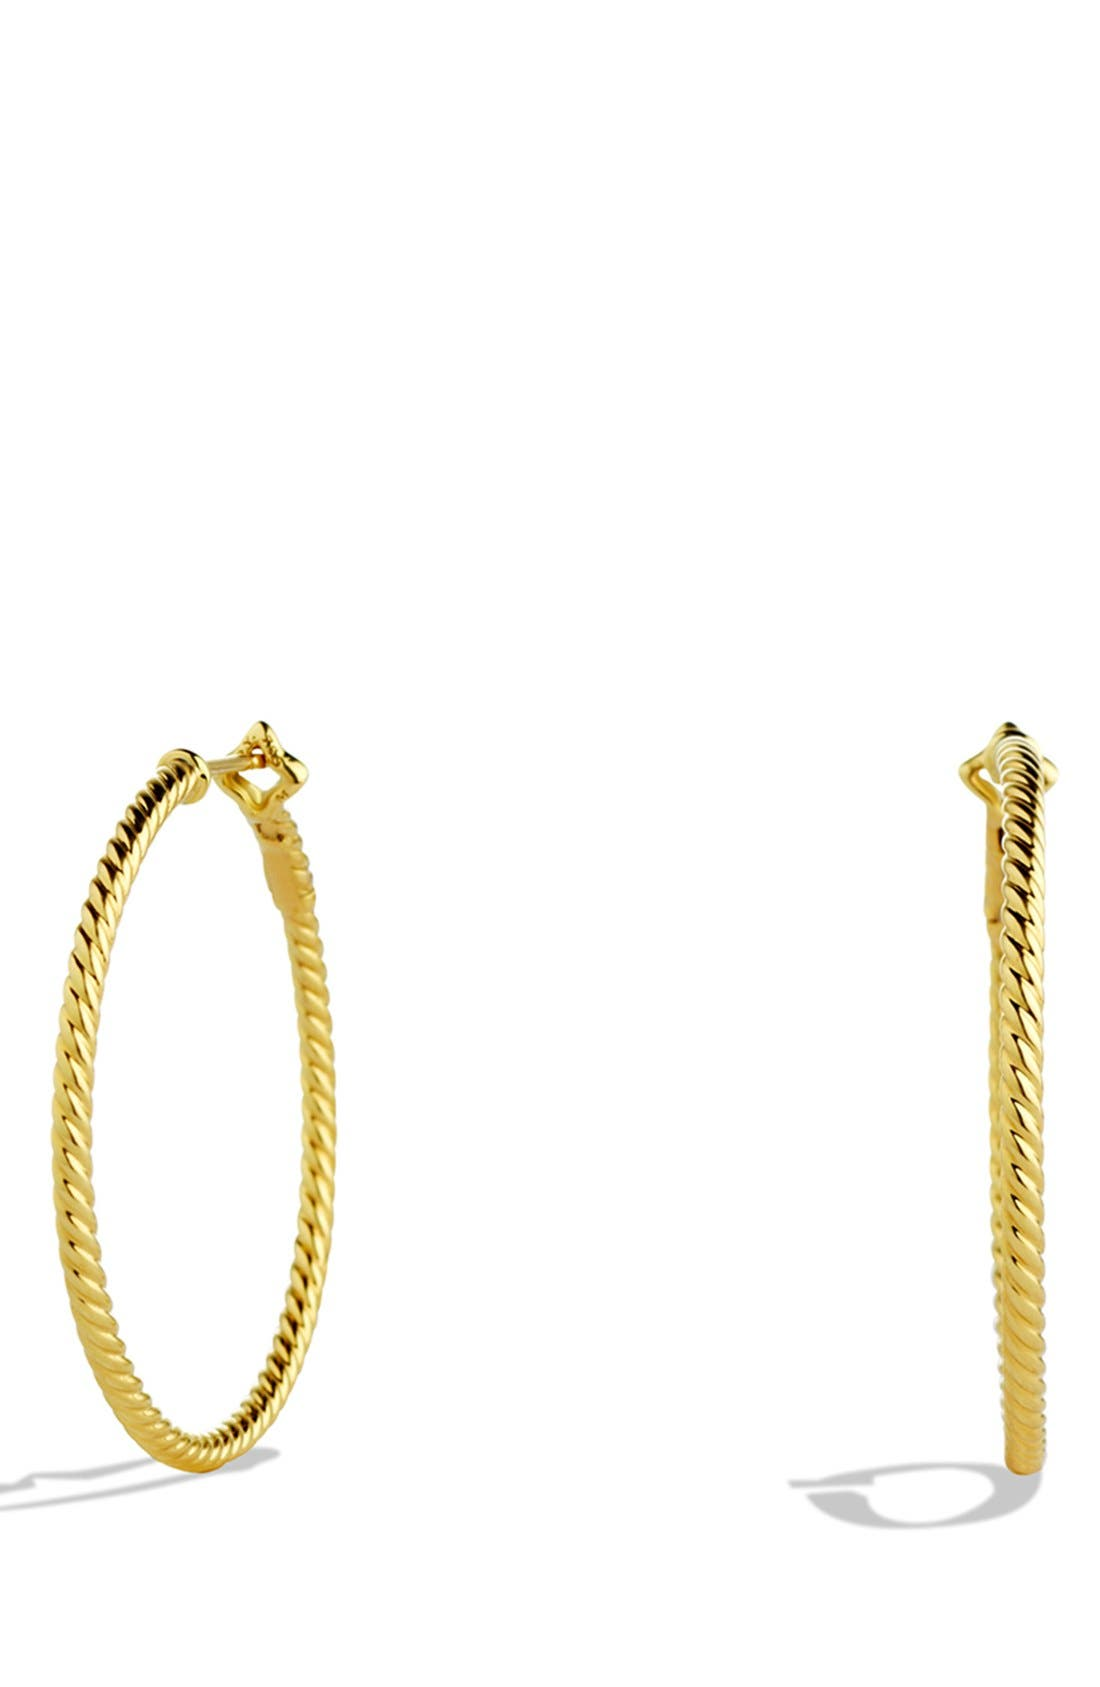 Cable Classics Hoop Earrings,                         Main,                         color, GOLD